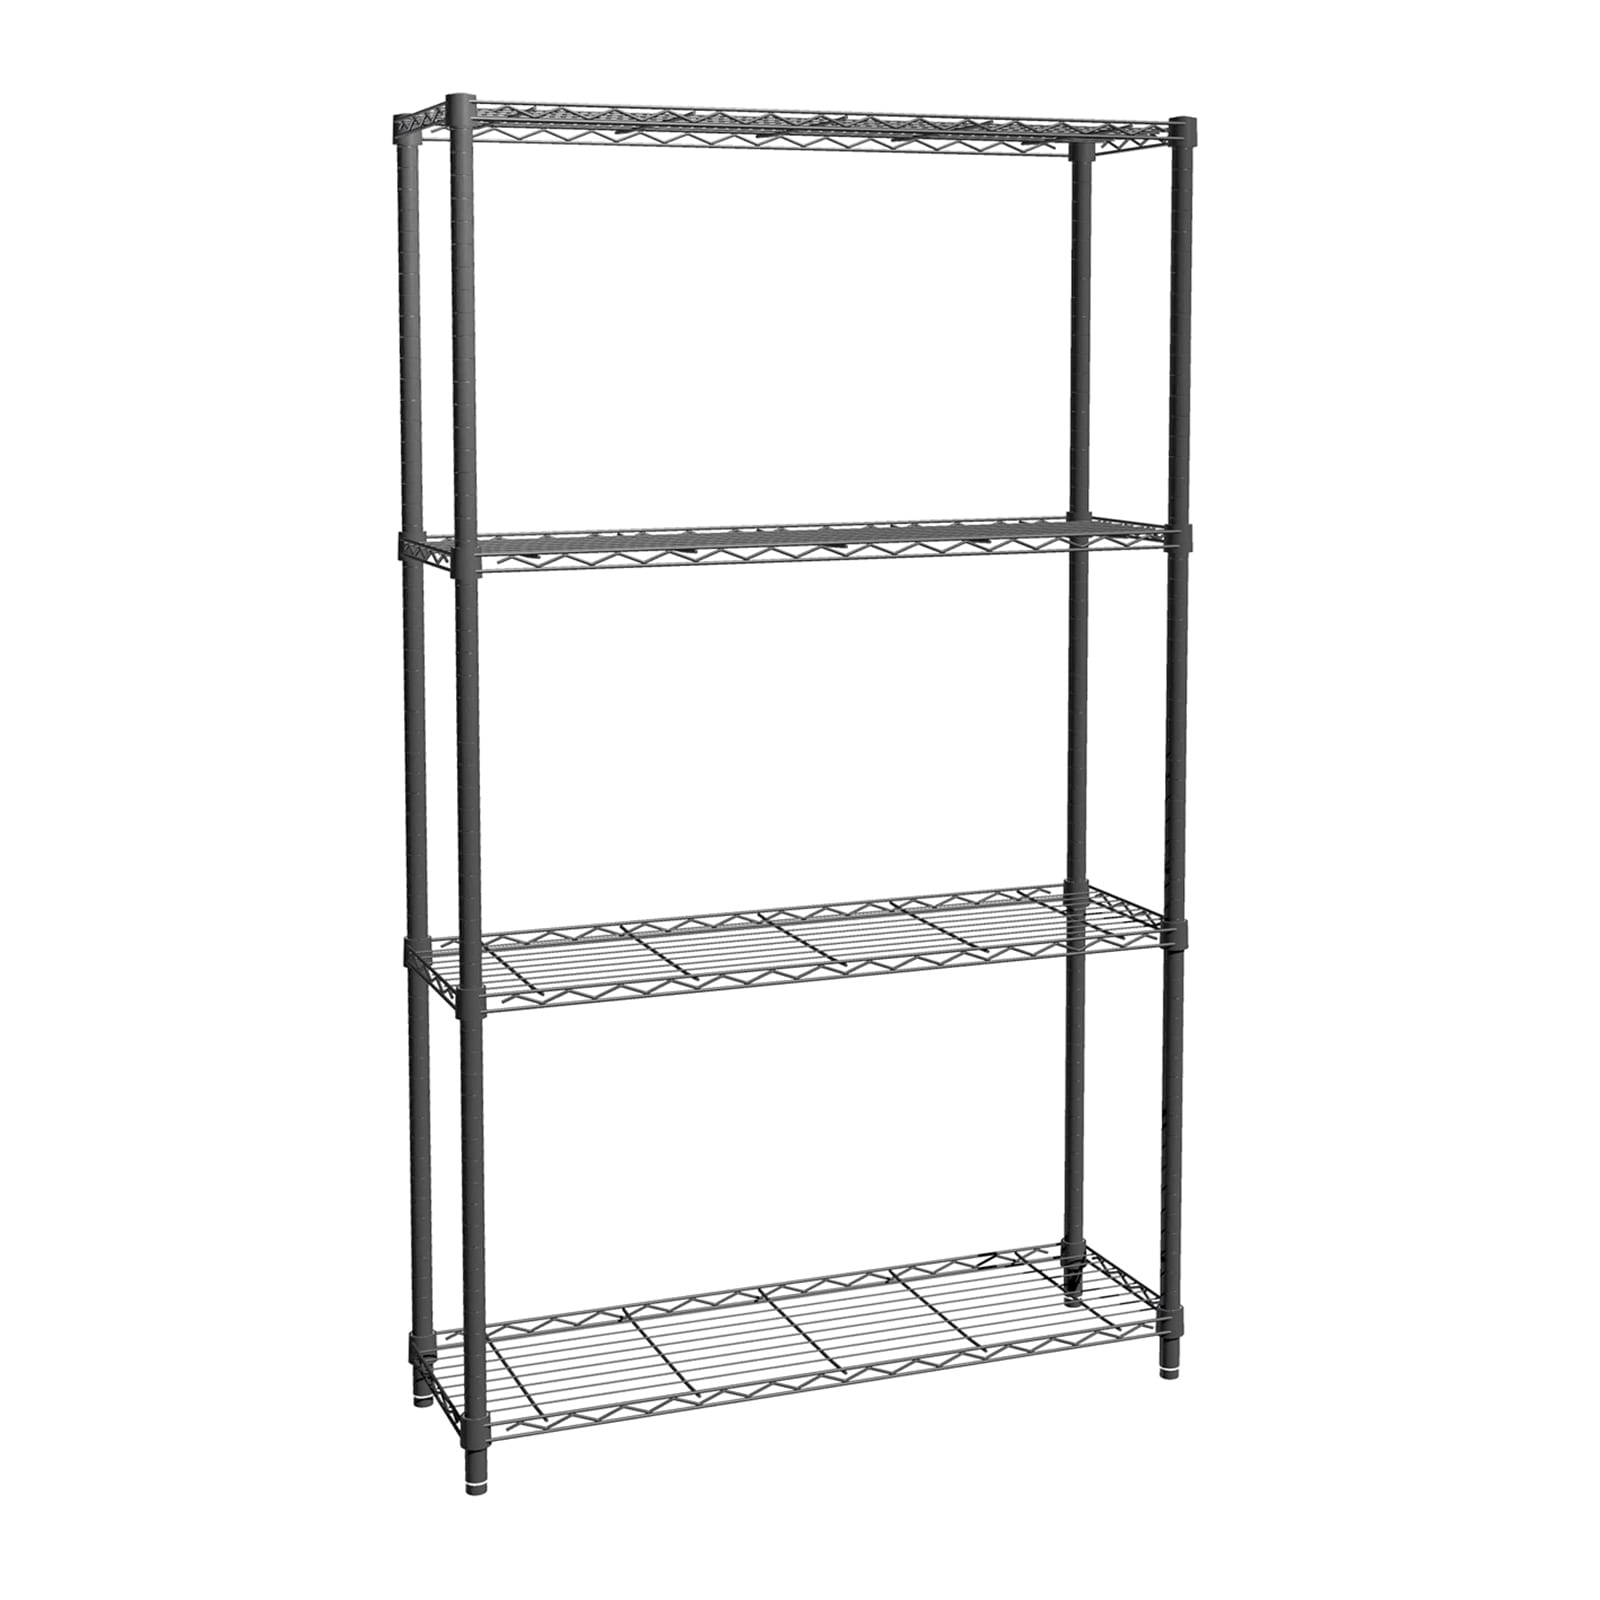 4 Tier Adjustable Shelf